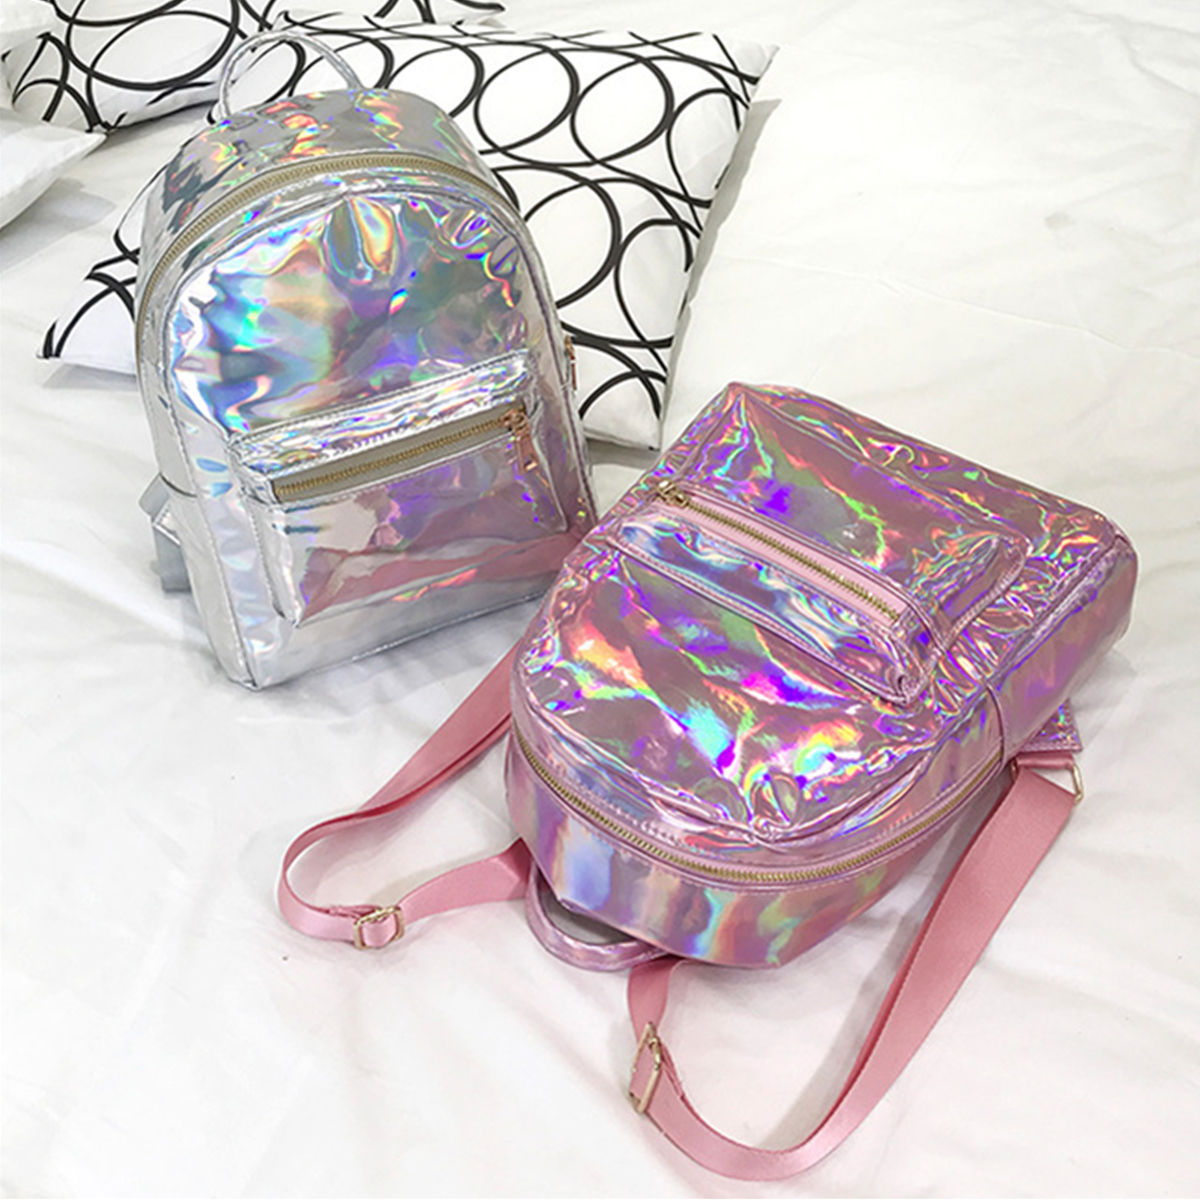 36400438b3 Silver Gold Pink Laser Backpack women girls Bag leather Holographic  Backpack school bags for teenage girls